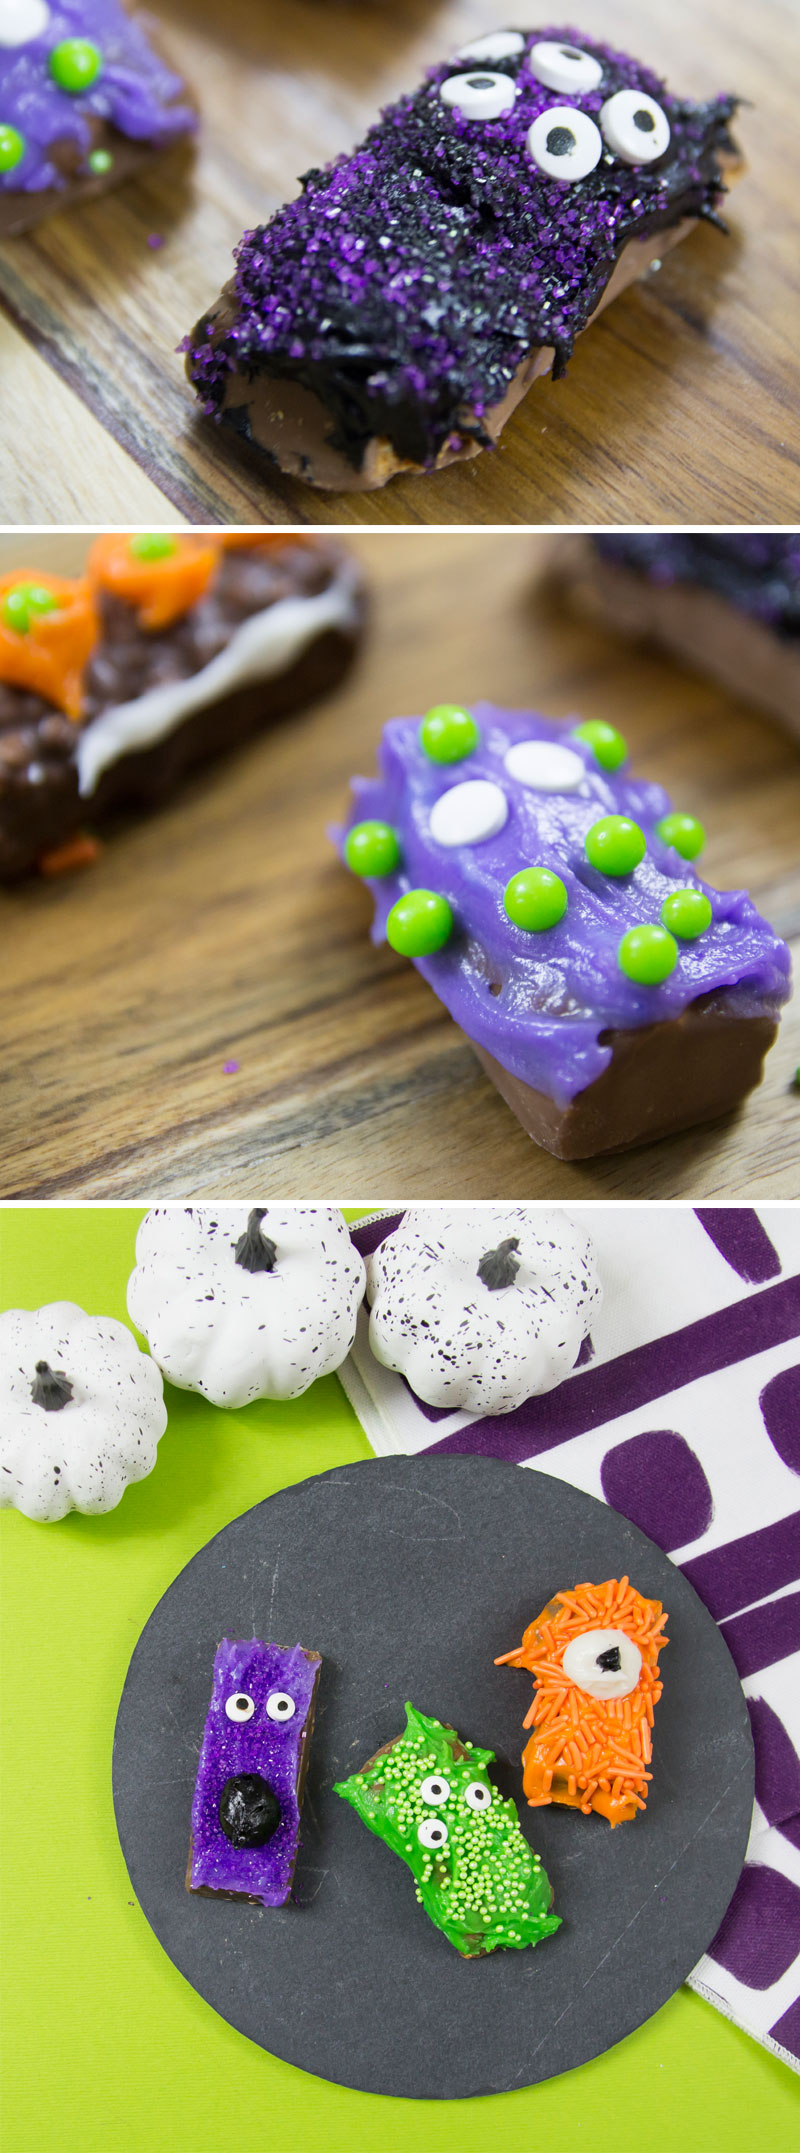 Learn how to make a monster candy bar tray to serve at your Halloween get together or as a kids cooking and food decorating activity!